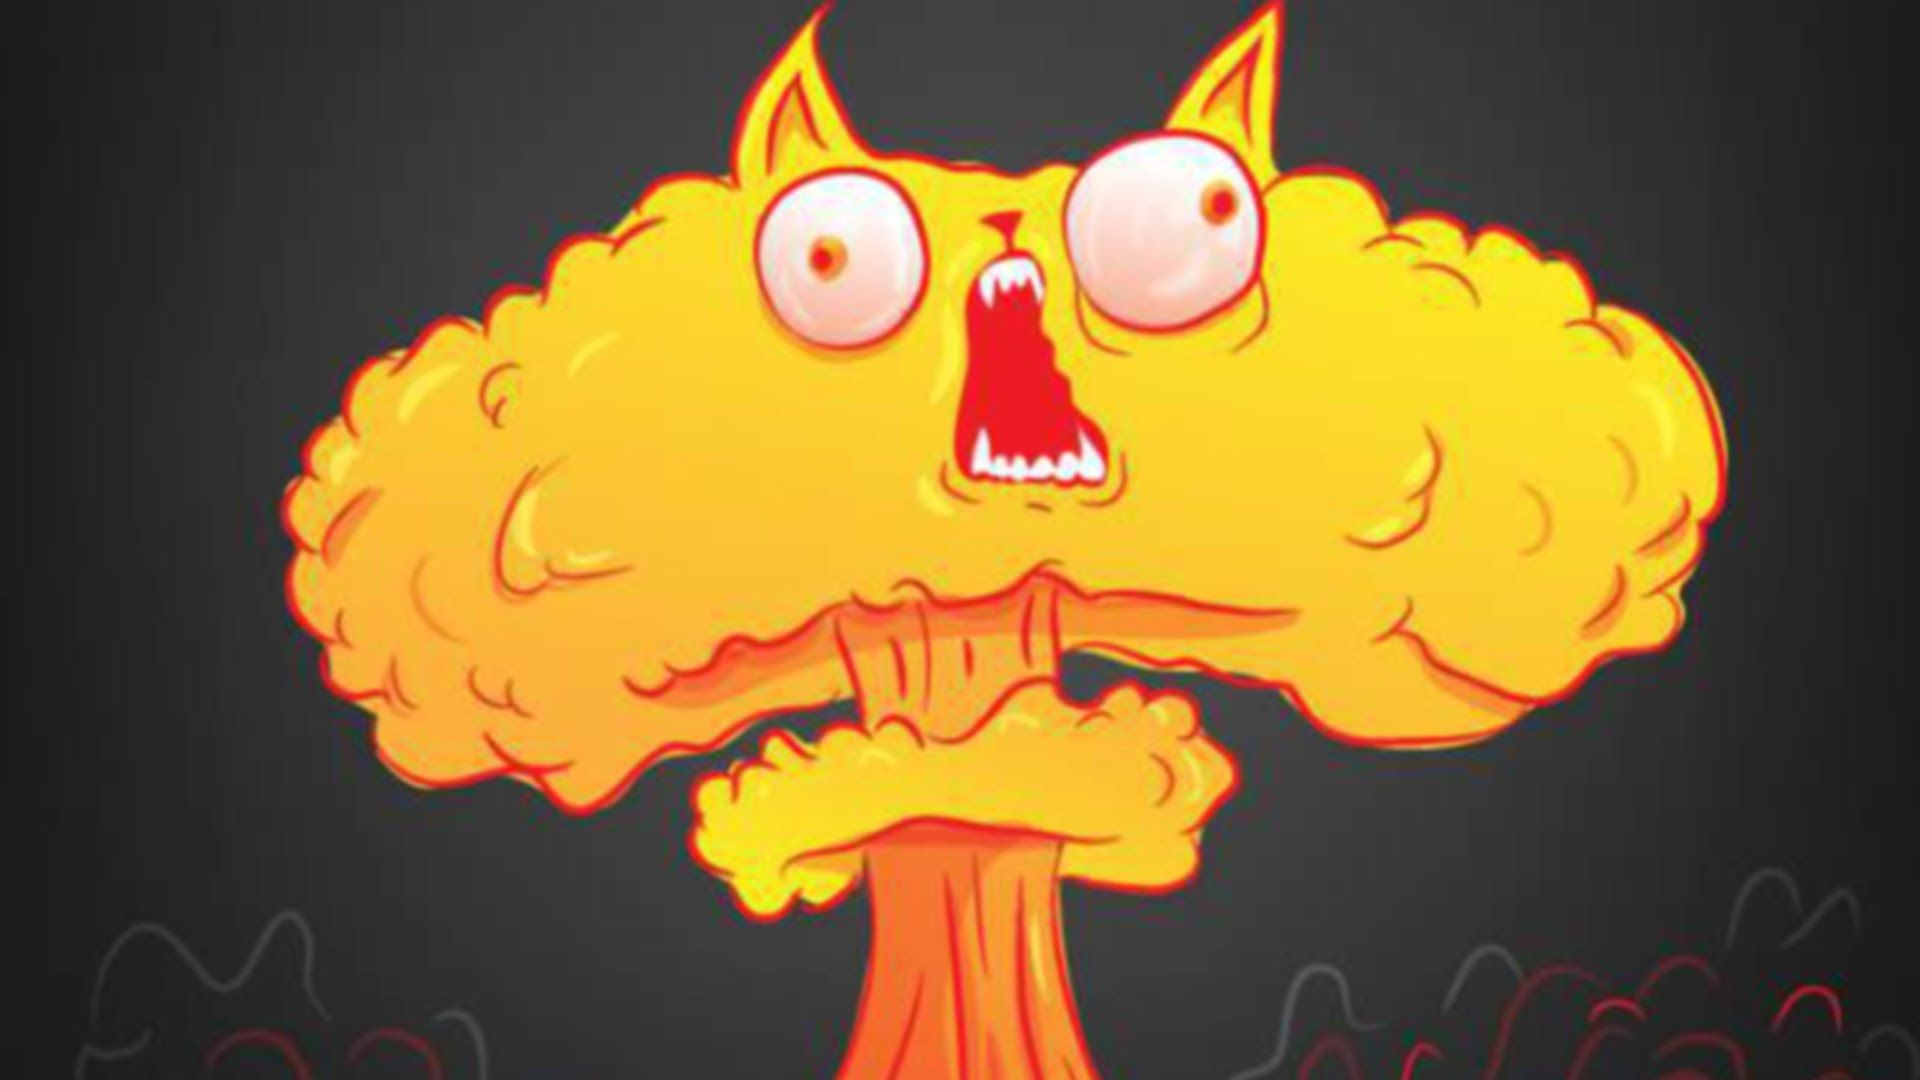 An Exploding Kittens Gameplay Party Pack Expansion In 2020 Exploding Kittens Cute Kitten Gif Kittens Cutest